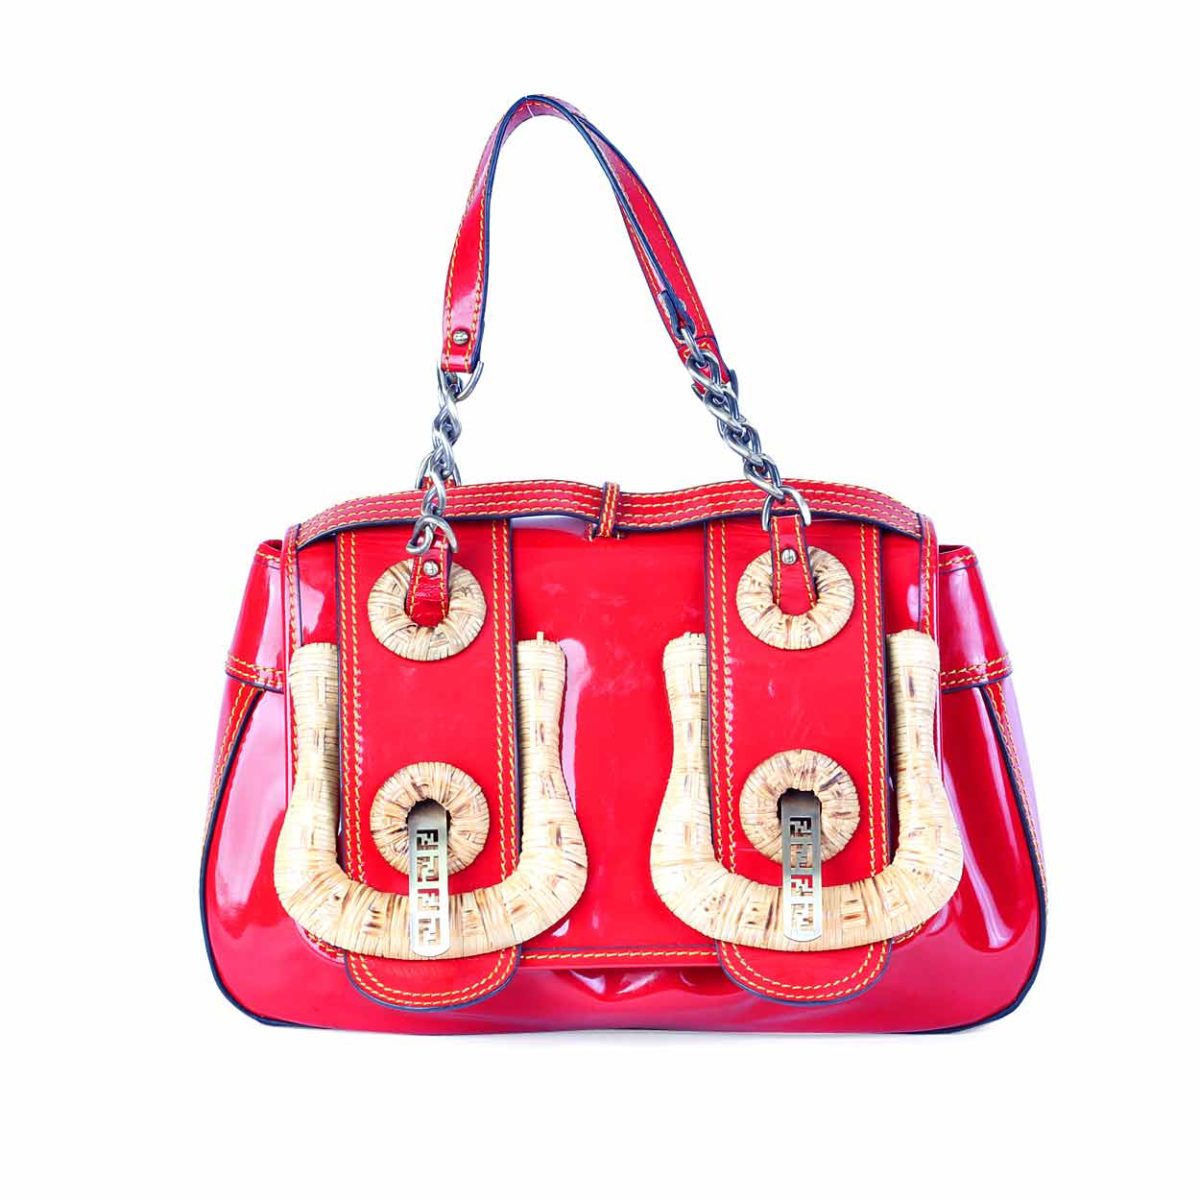 dd15128c87 FENDI Red Patent Bamboo B Bag - Limited Edition | Luxity